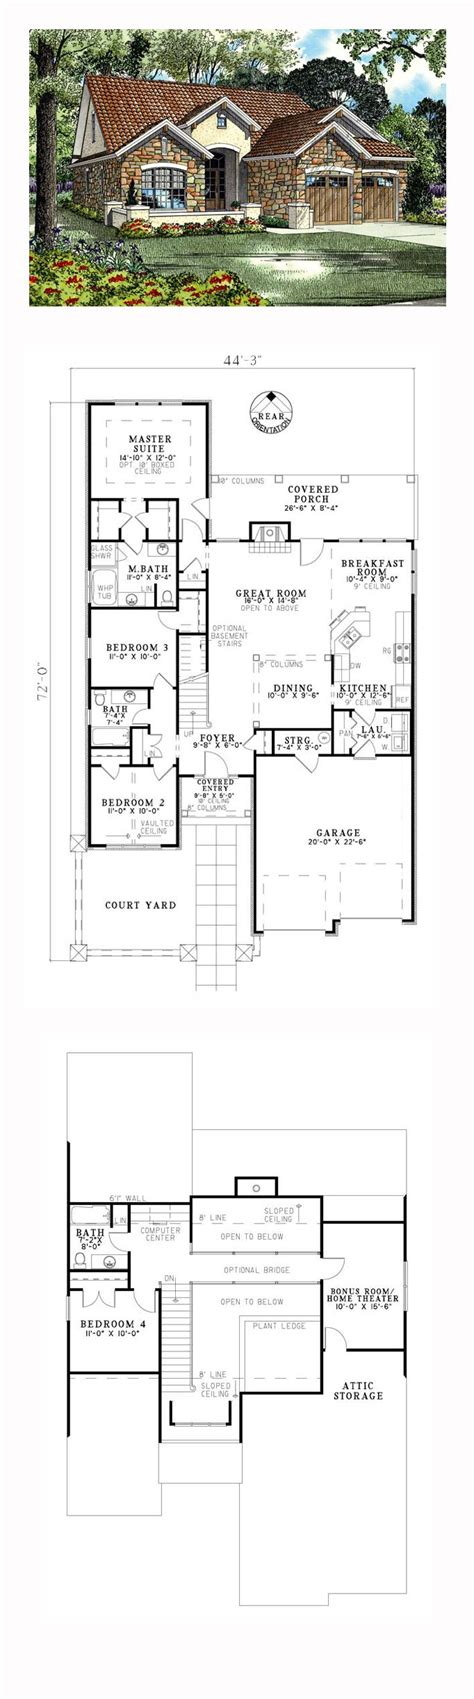 4 Bedroom Tuscan House Plans by 4 Bedroom Tuscan House Plans Www Stkittsvilla